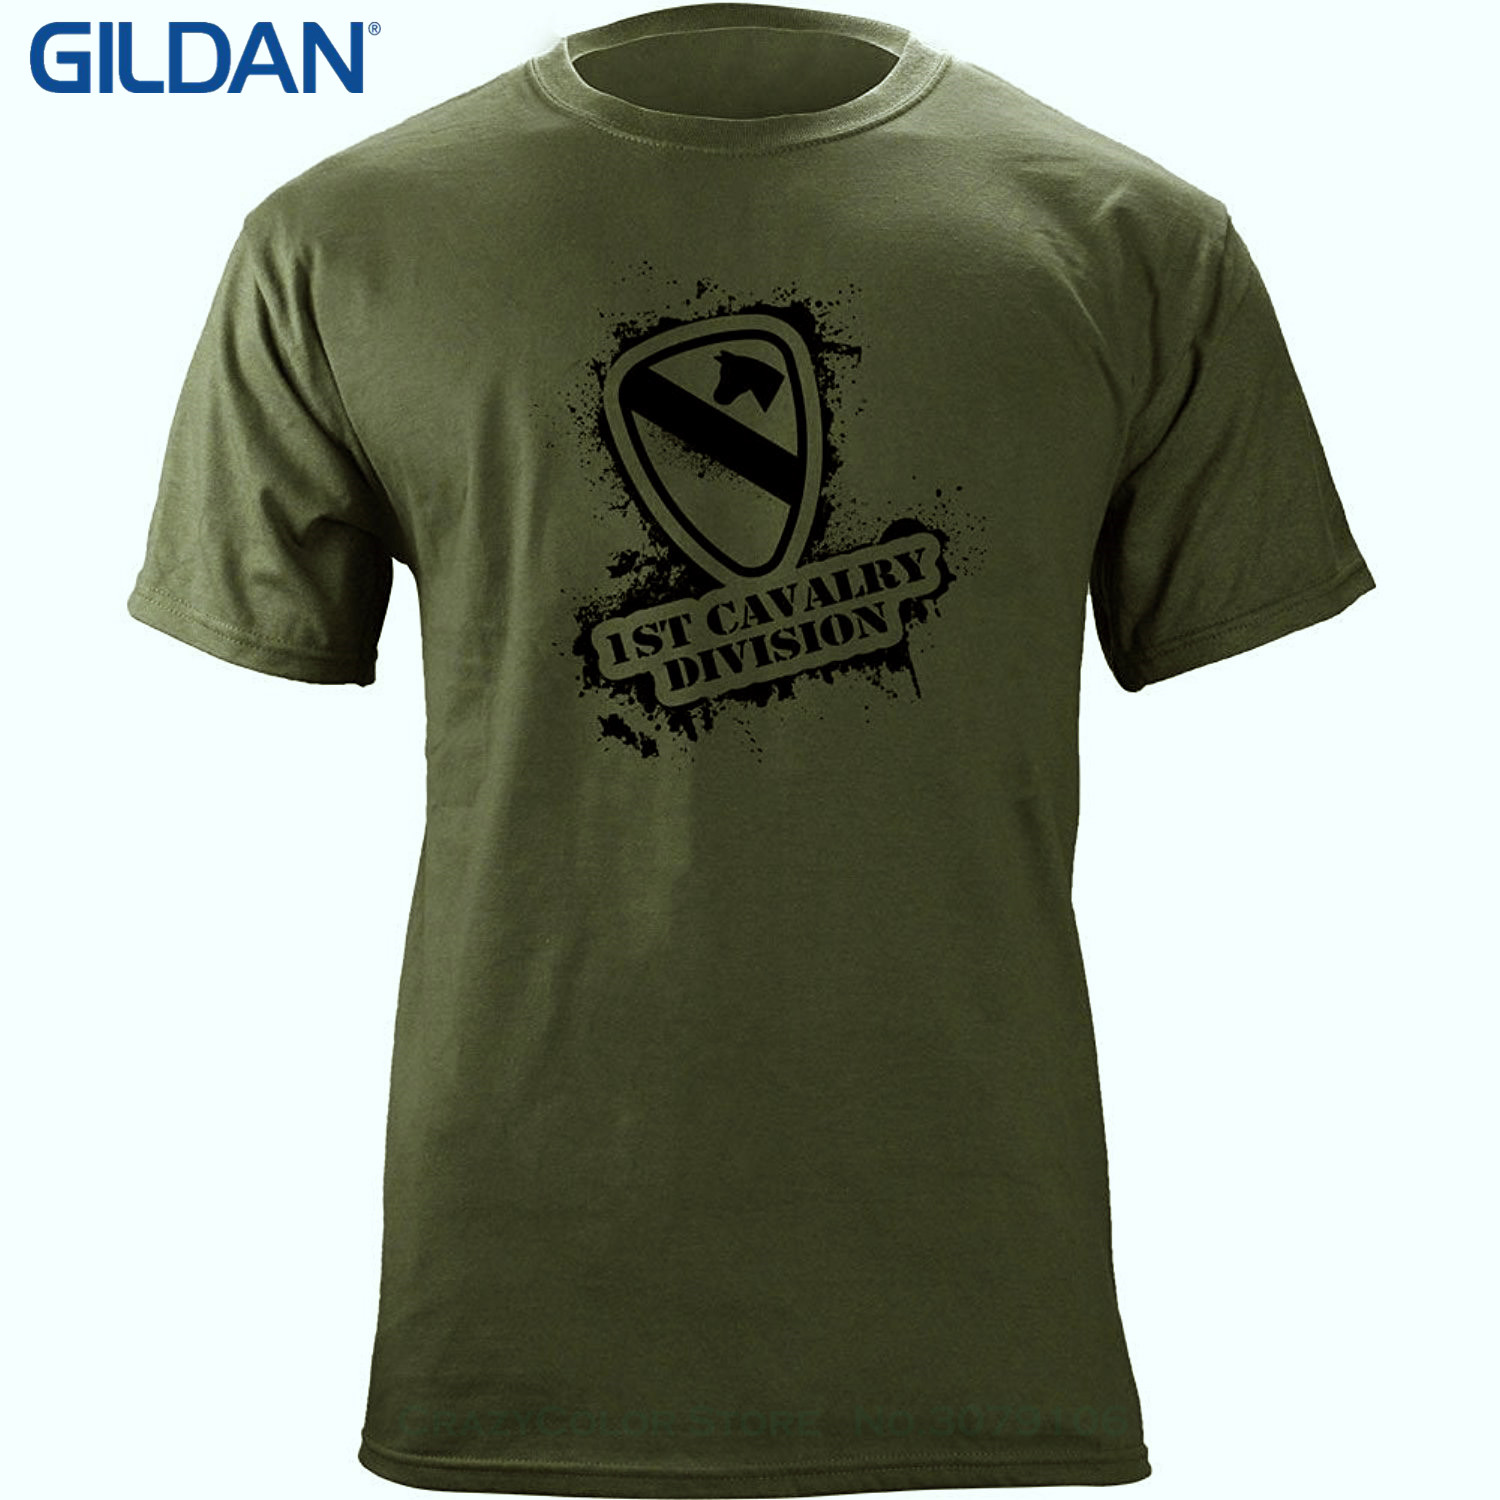 GILDAN 2017 New Arrival Men's Fashion Army 1st Cavalry Division Stencil Style T-shirt